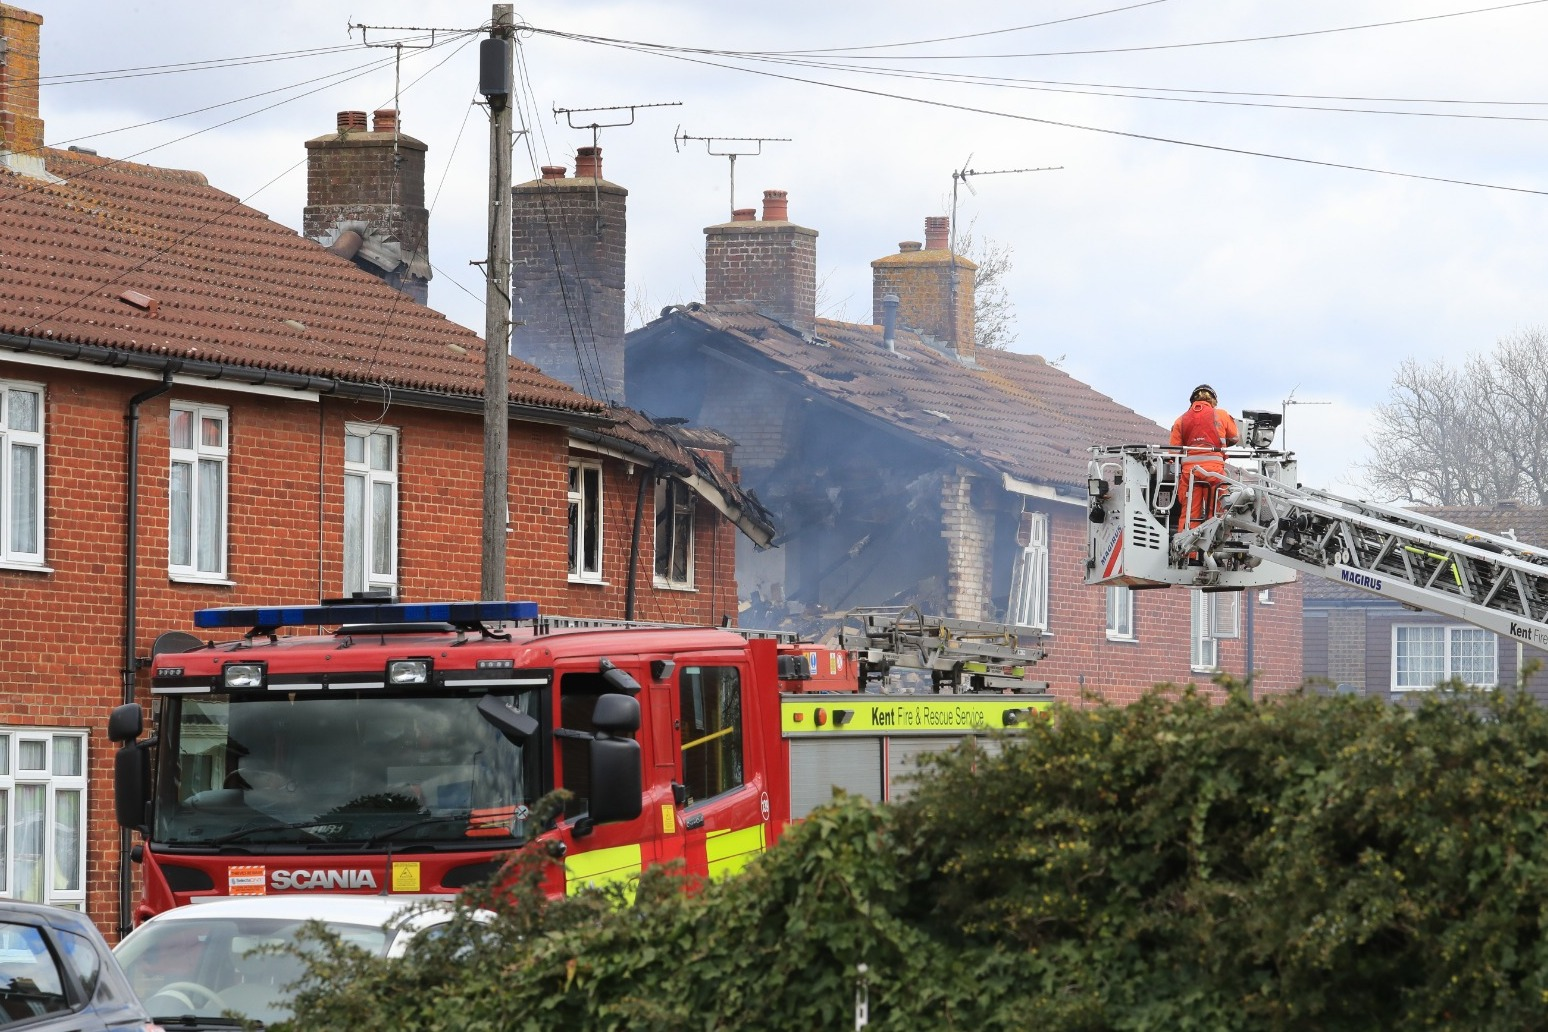 Firefighters tackle blaze following explosion at house